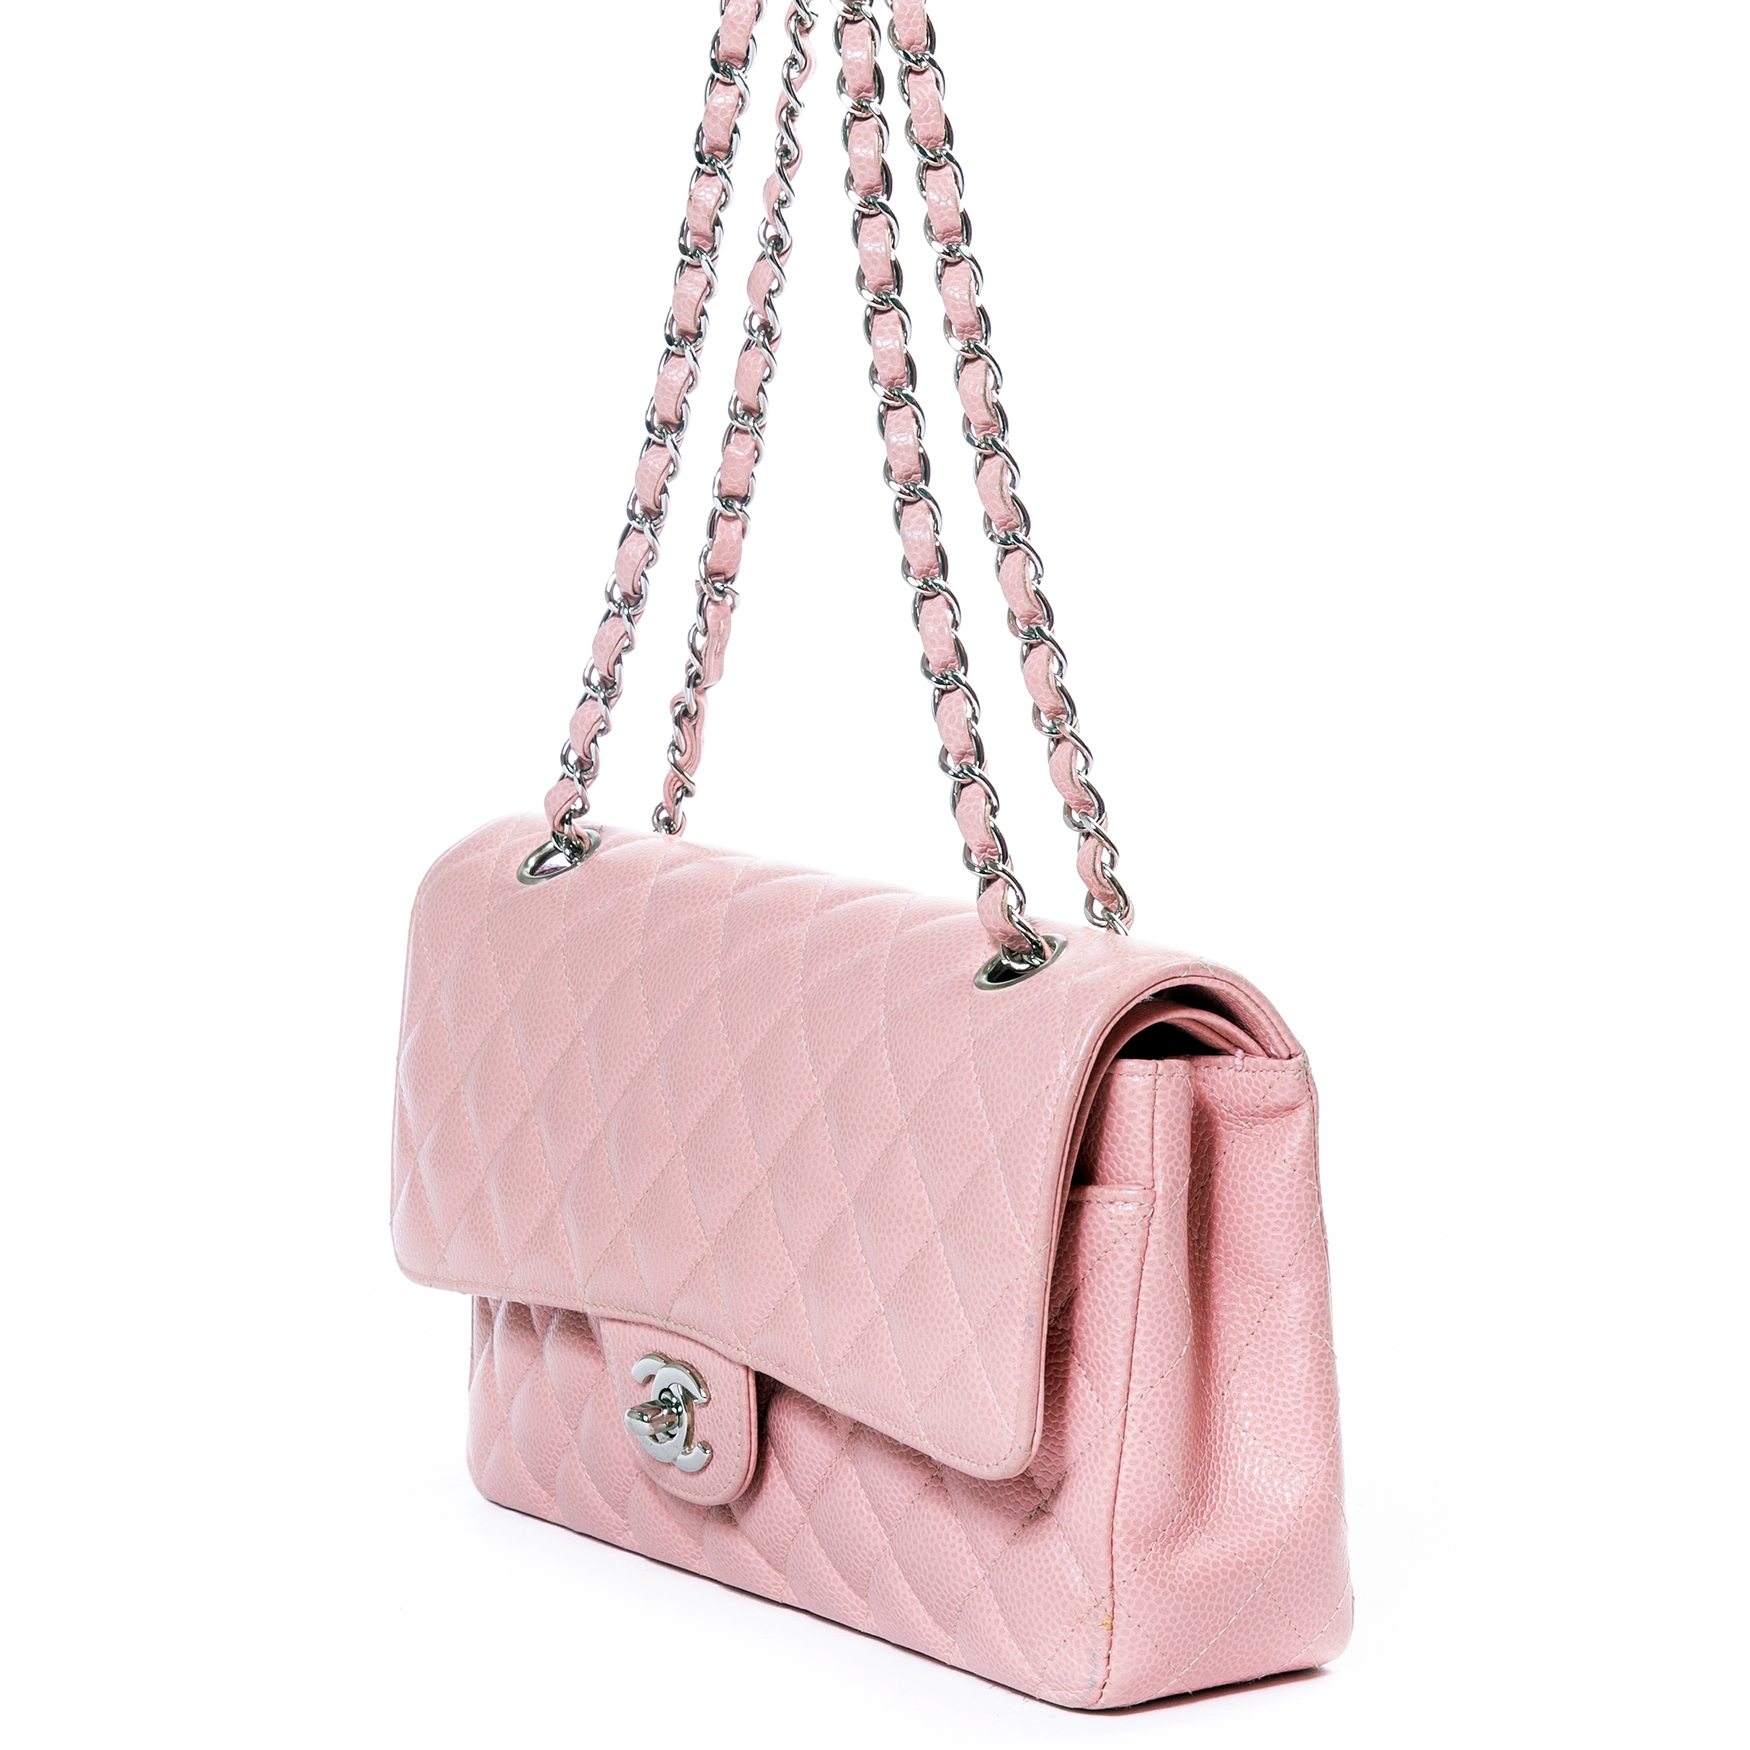 d63e545bc99459 Chanel Pink Quilted Caviar Medium Classic Double Flap Bag · Chanel